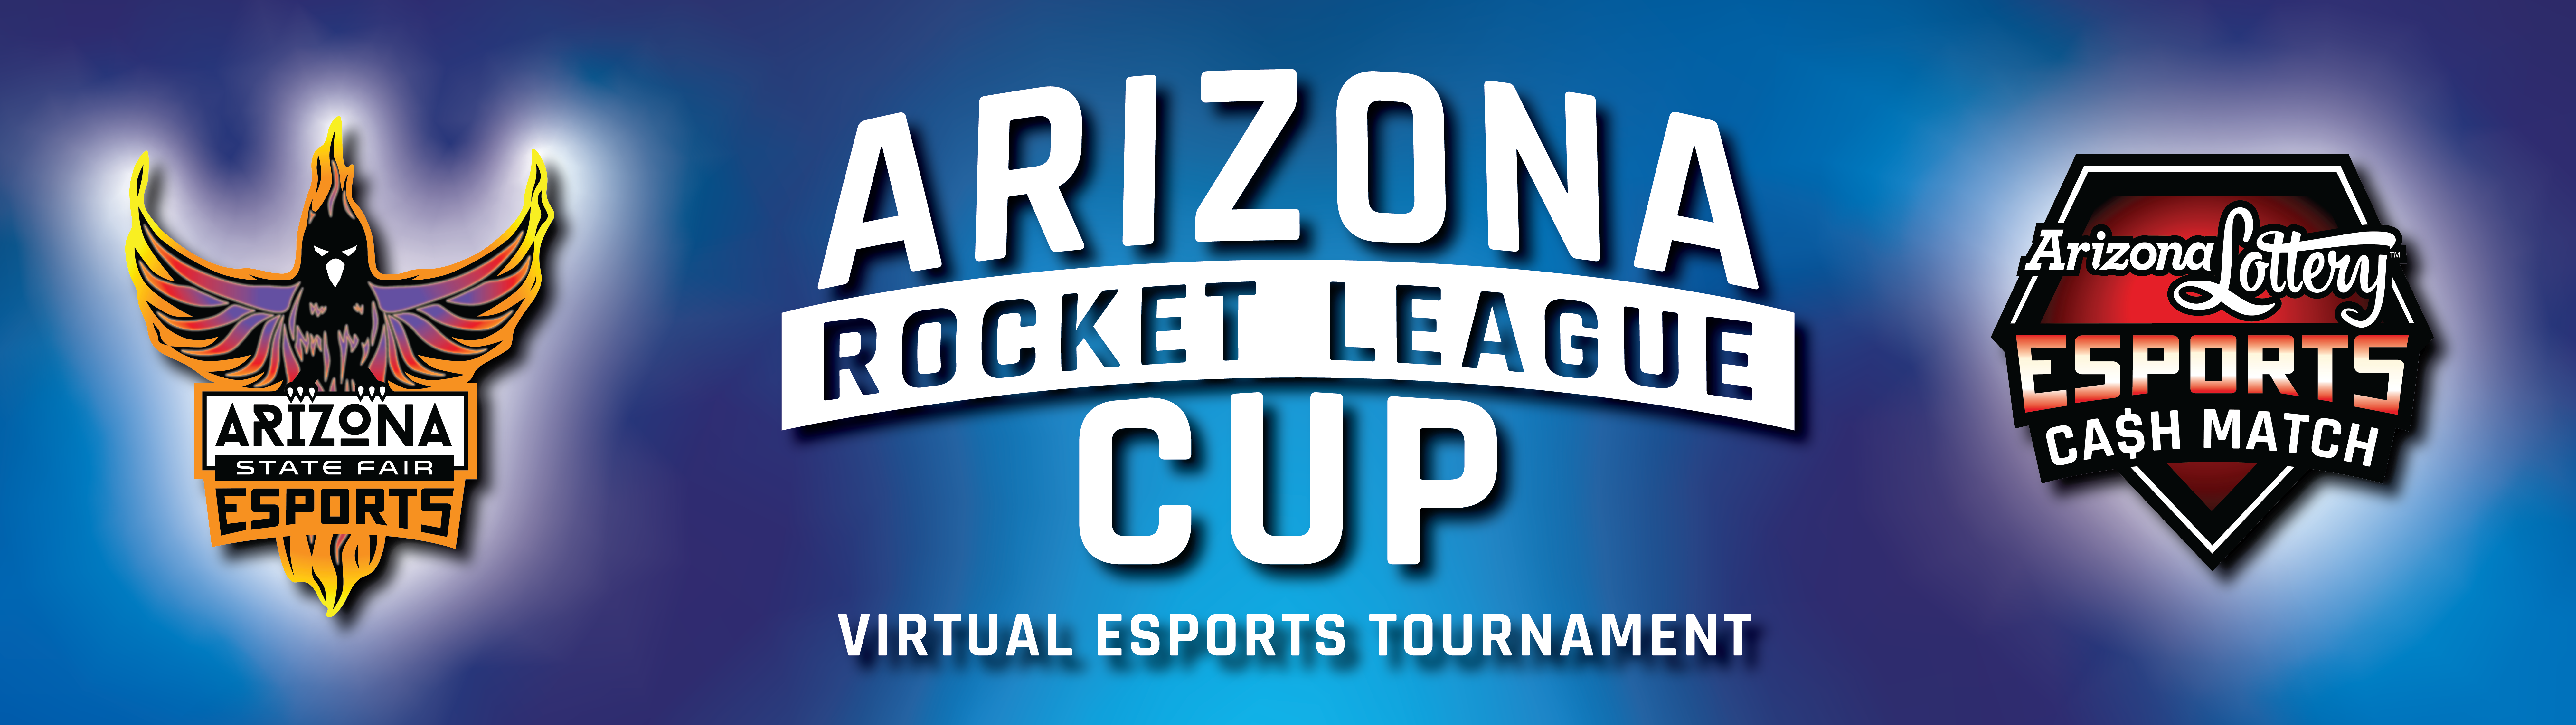 AZ Lottery Esports Rocket League Cup Banner